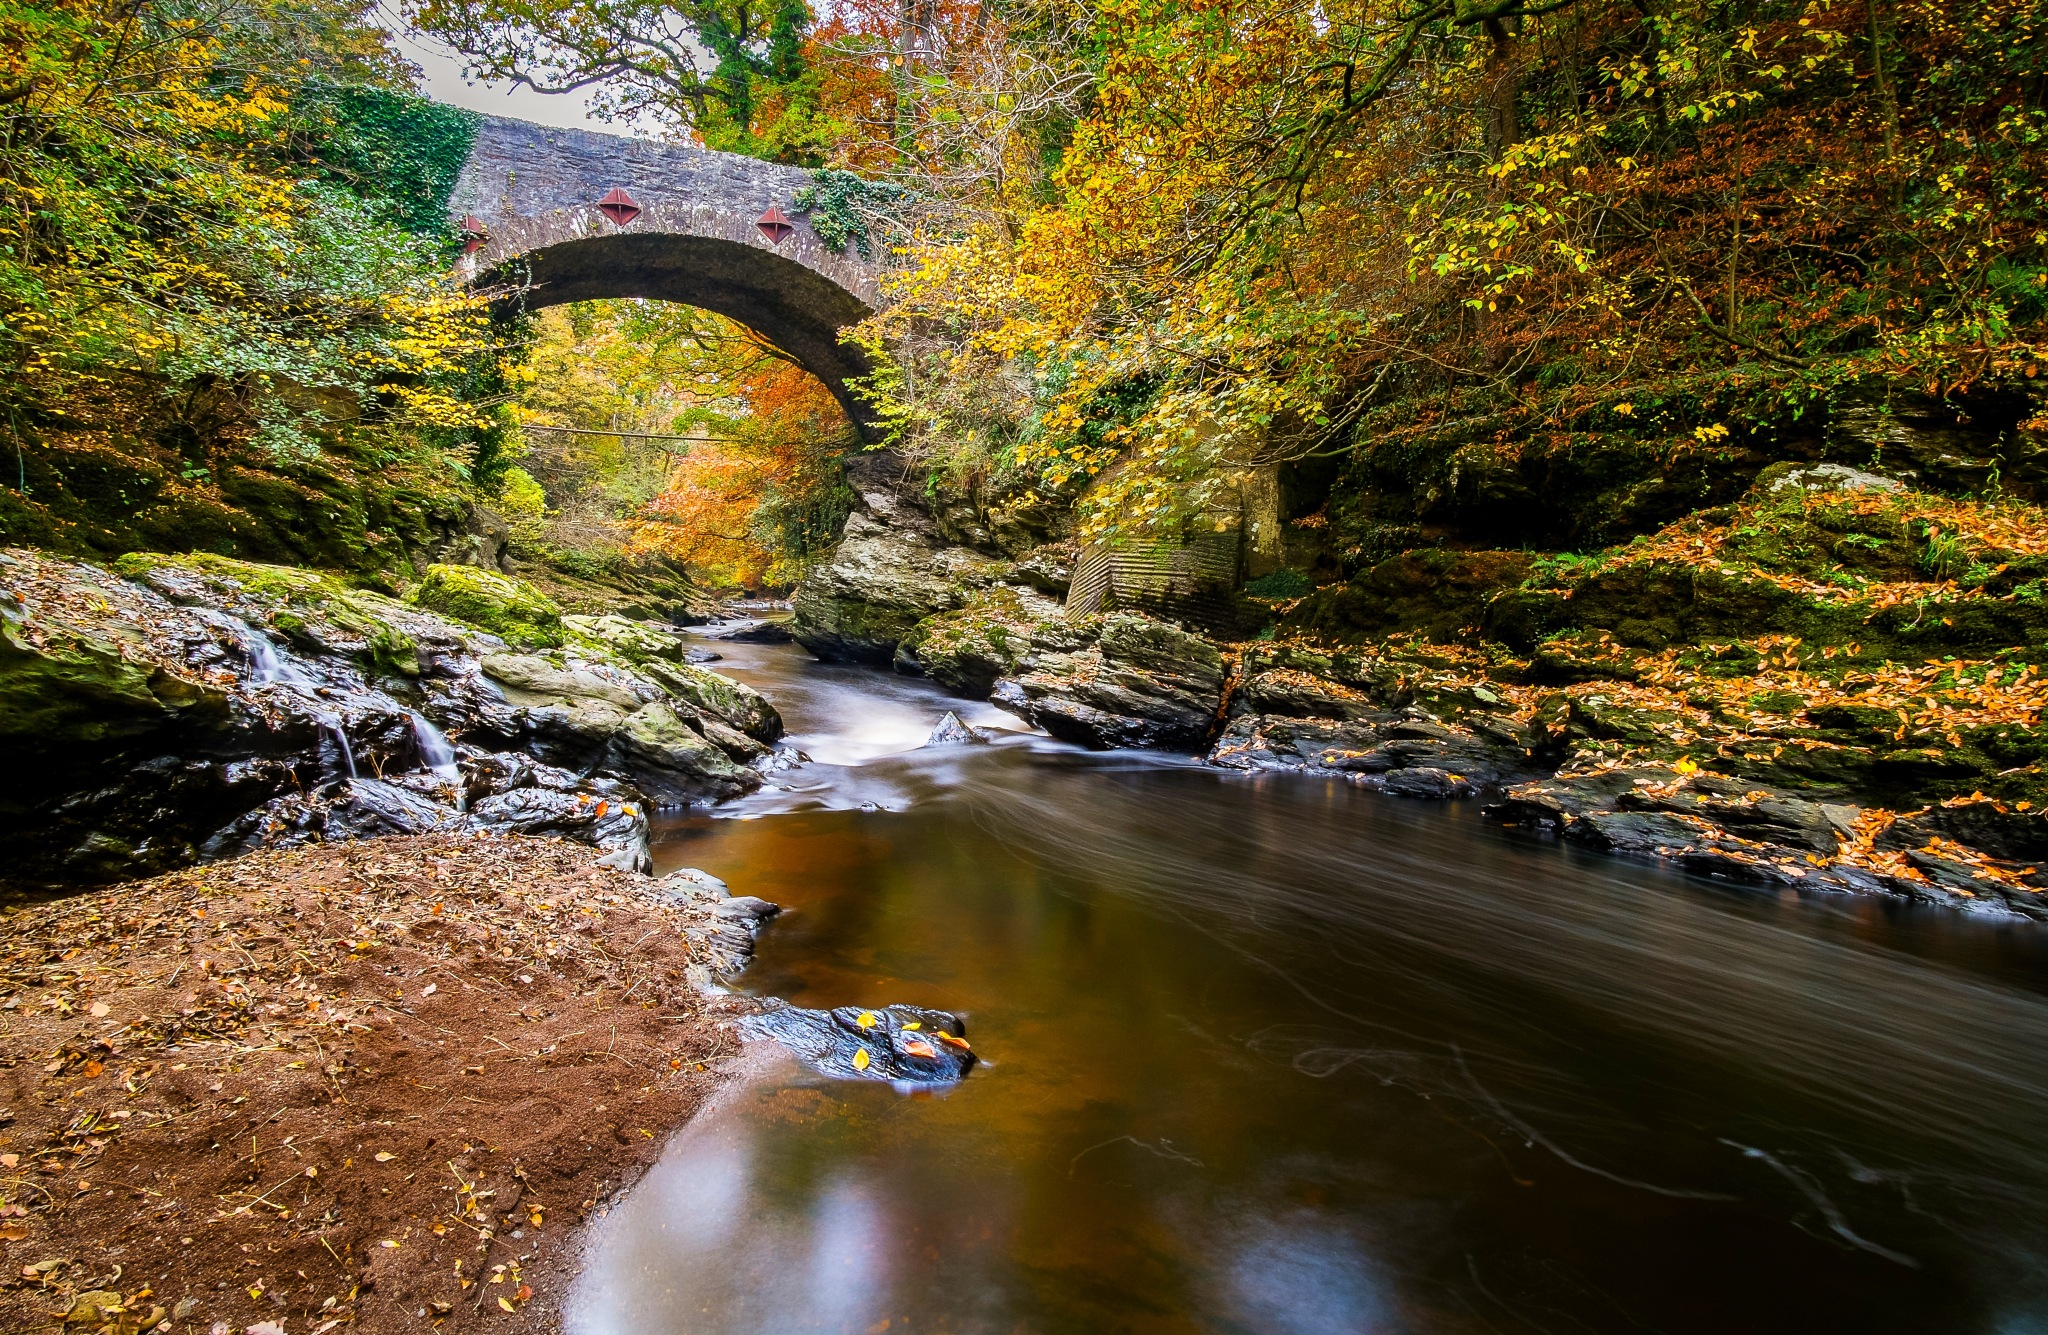 Autumn in the Roe valley by Lee Morrow